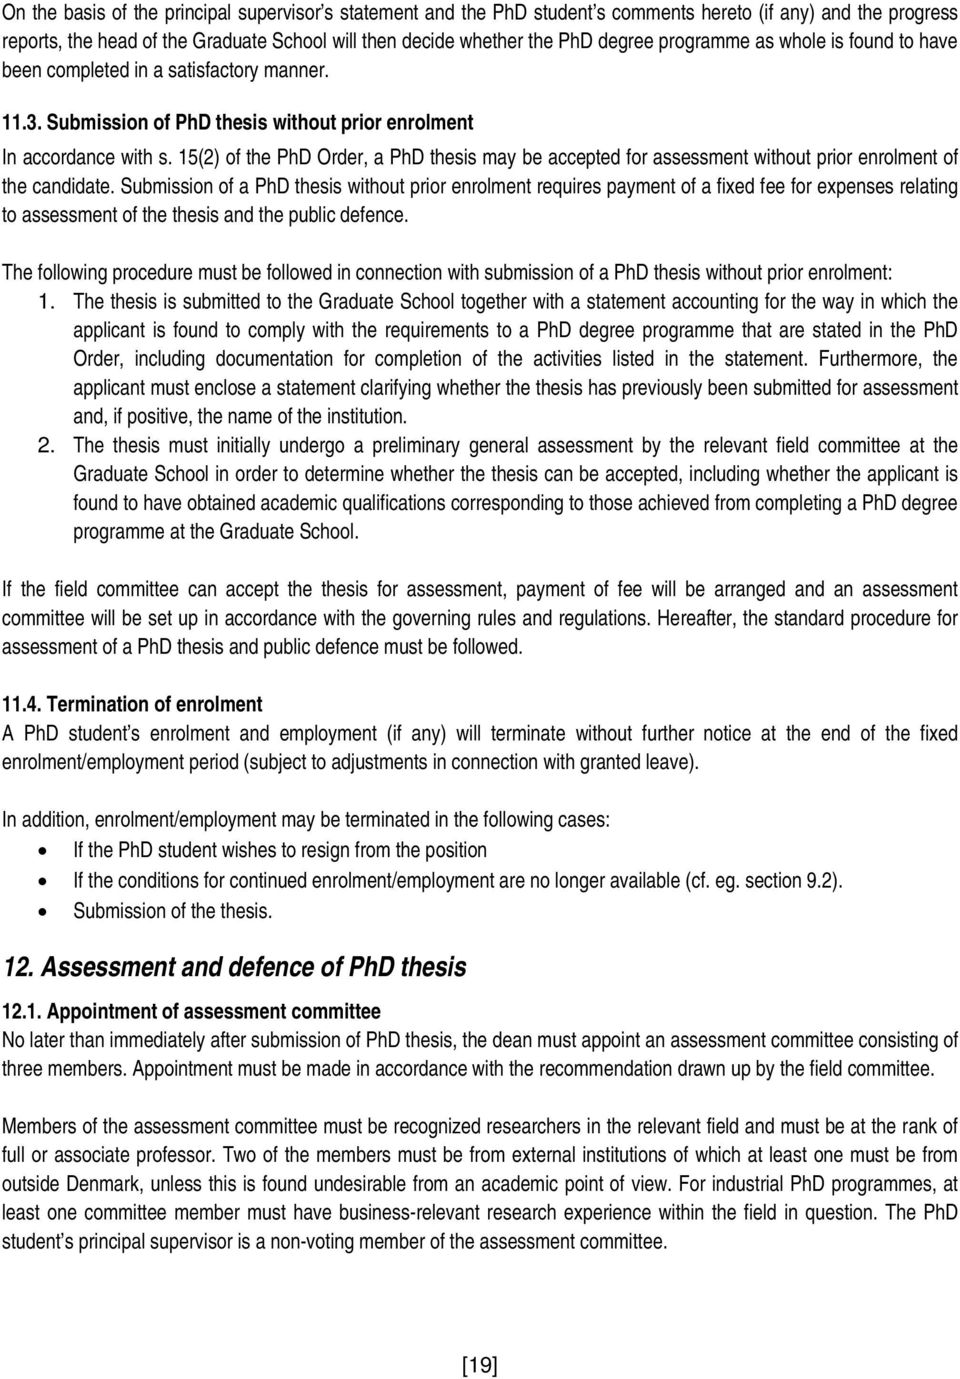 15(2) of the PhD Order, a PhD thesis may be accepted for assessment without prior enrolment of the candidate.